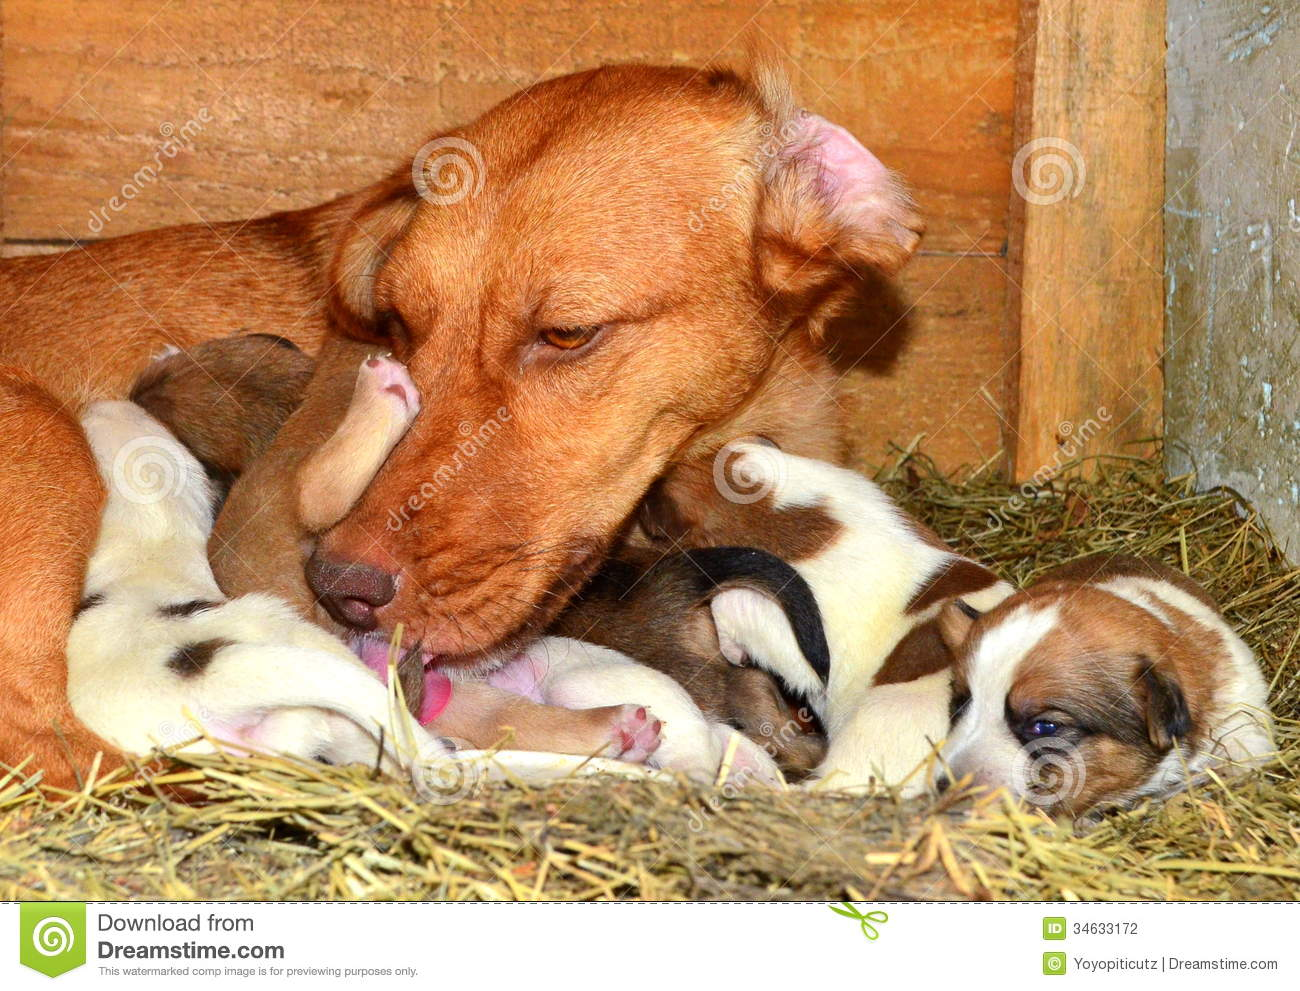 Are woman breast feeding dog thought